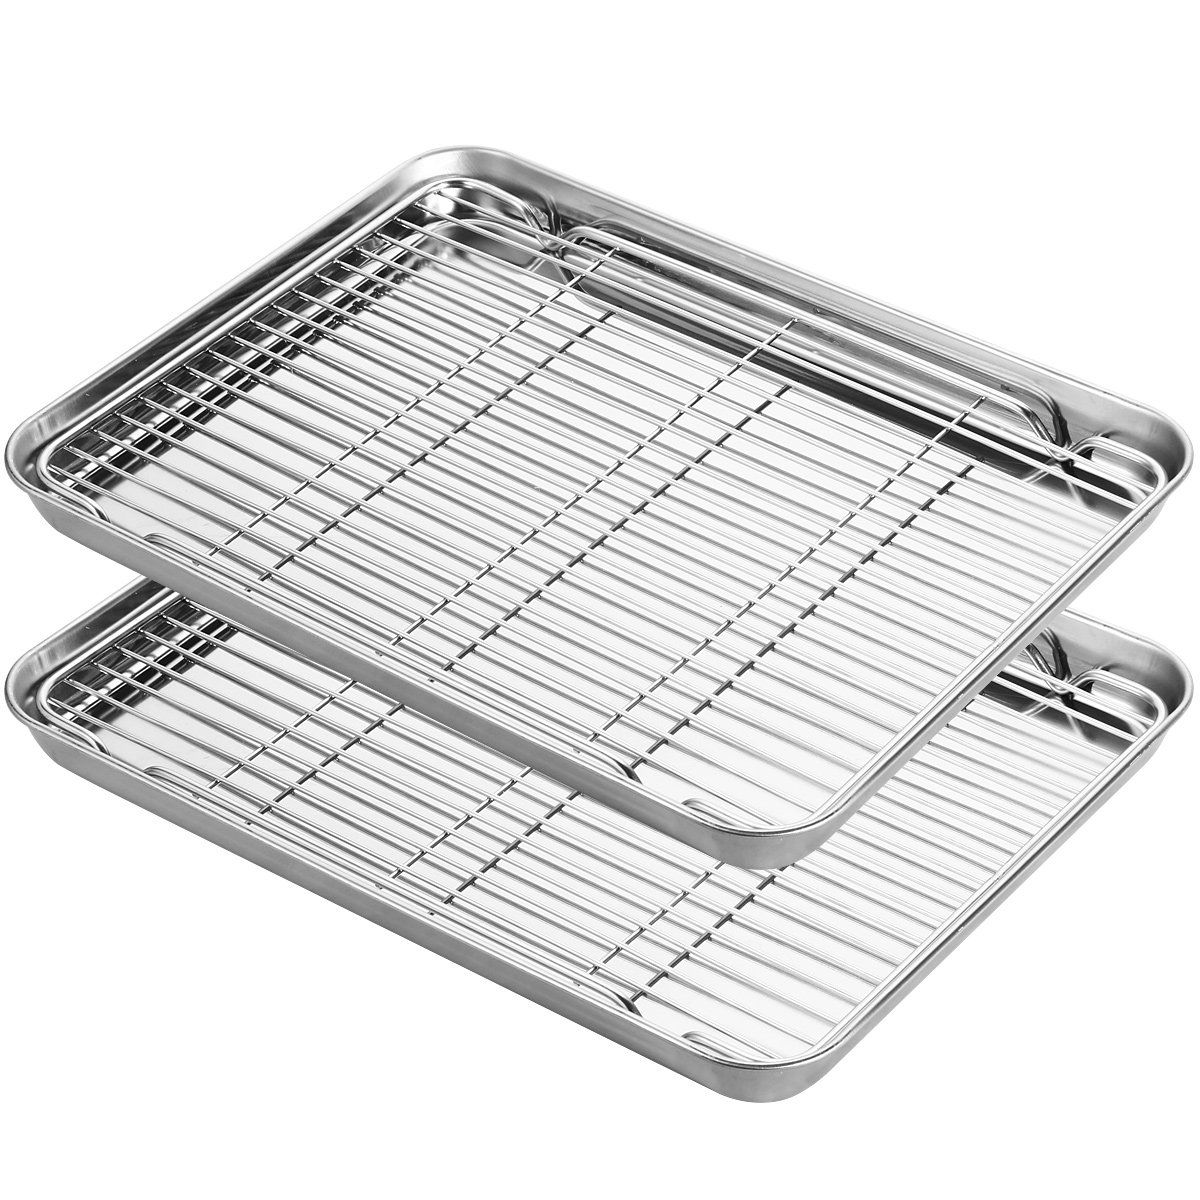 Stainless Steel Baking Sheets With Rack Hkj Chef Cookie Sheets And Nonstick Cooling Rack And Baking Pans For Oven And Toaster Baking Pans Toaster Oven Toaster